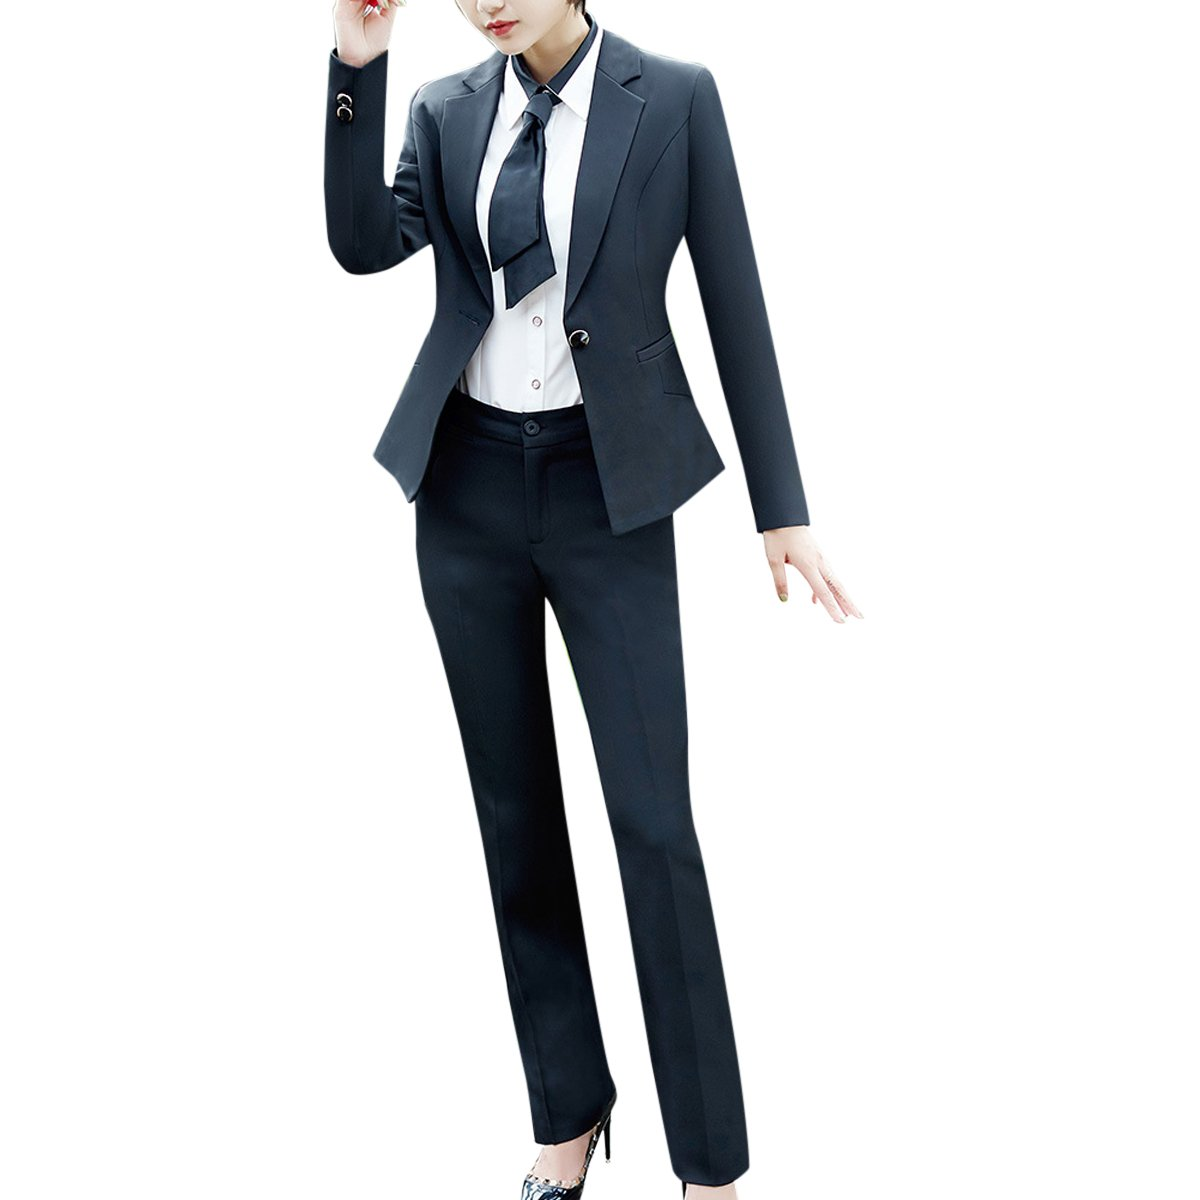 YUNCLOS Women's 4 Piece Business Office Lady Suit Set For Work Formal Blazer Vest Pant and Skirt by YUNCLOS